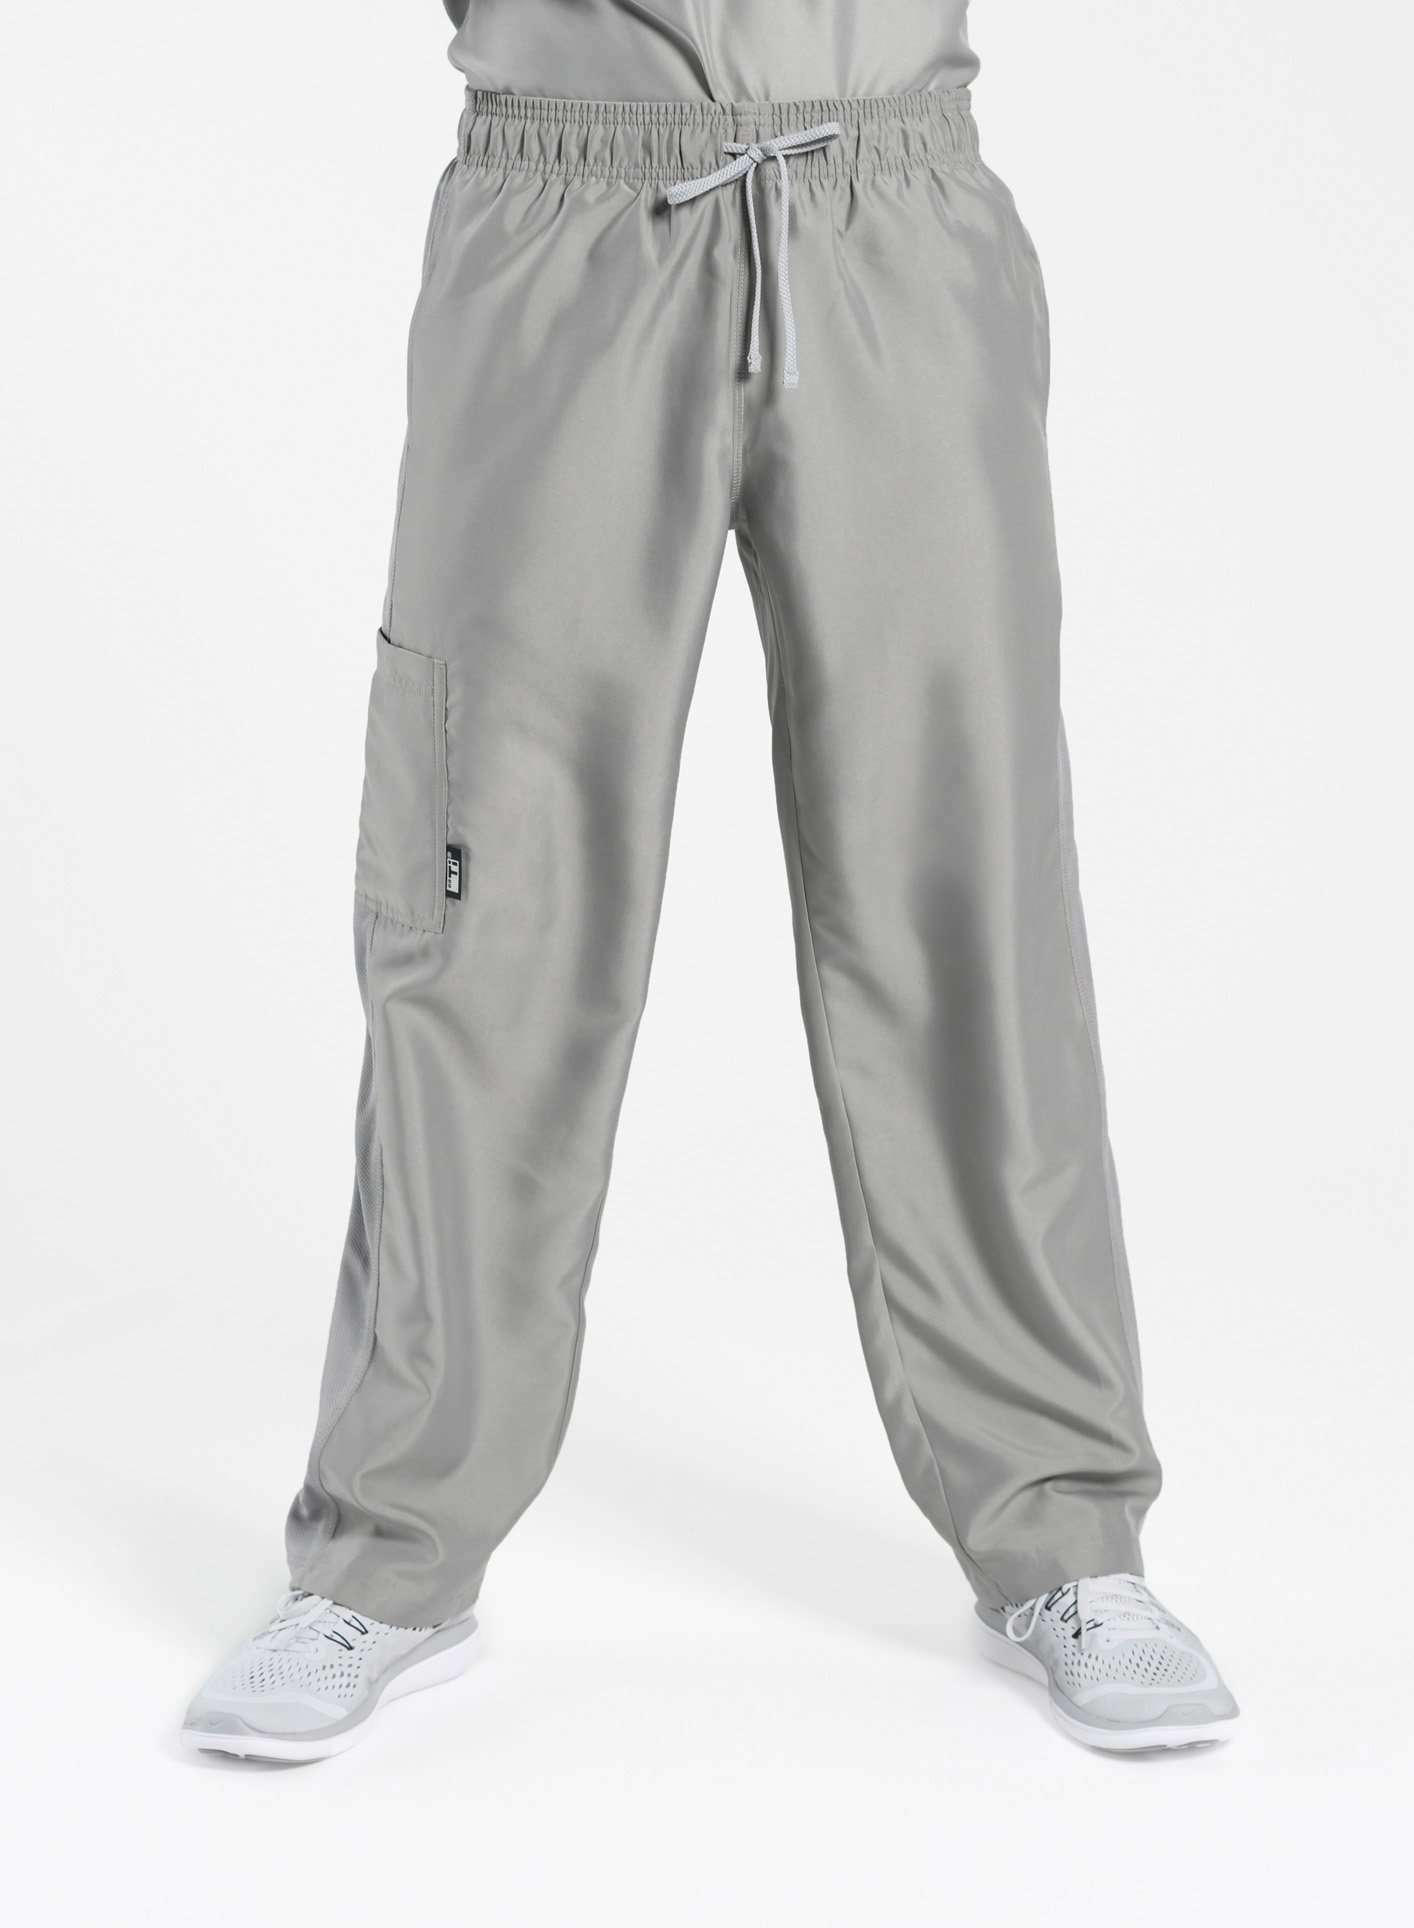 mens Elements cargo pocket relaxed fit scrub pants light grey